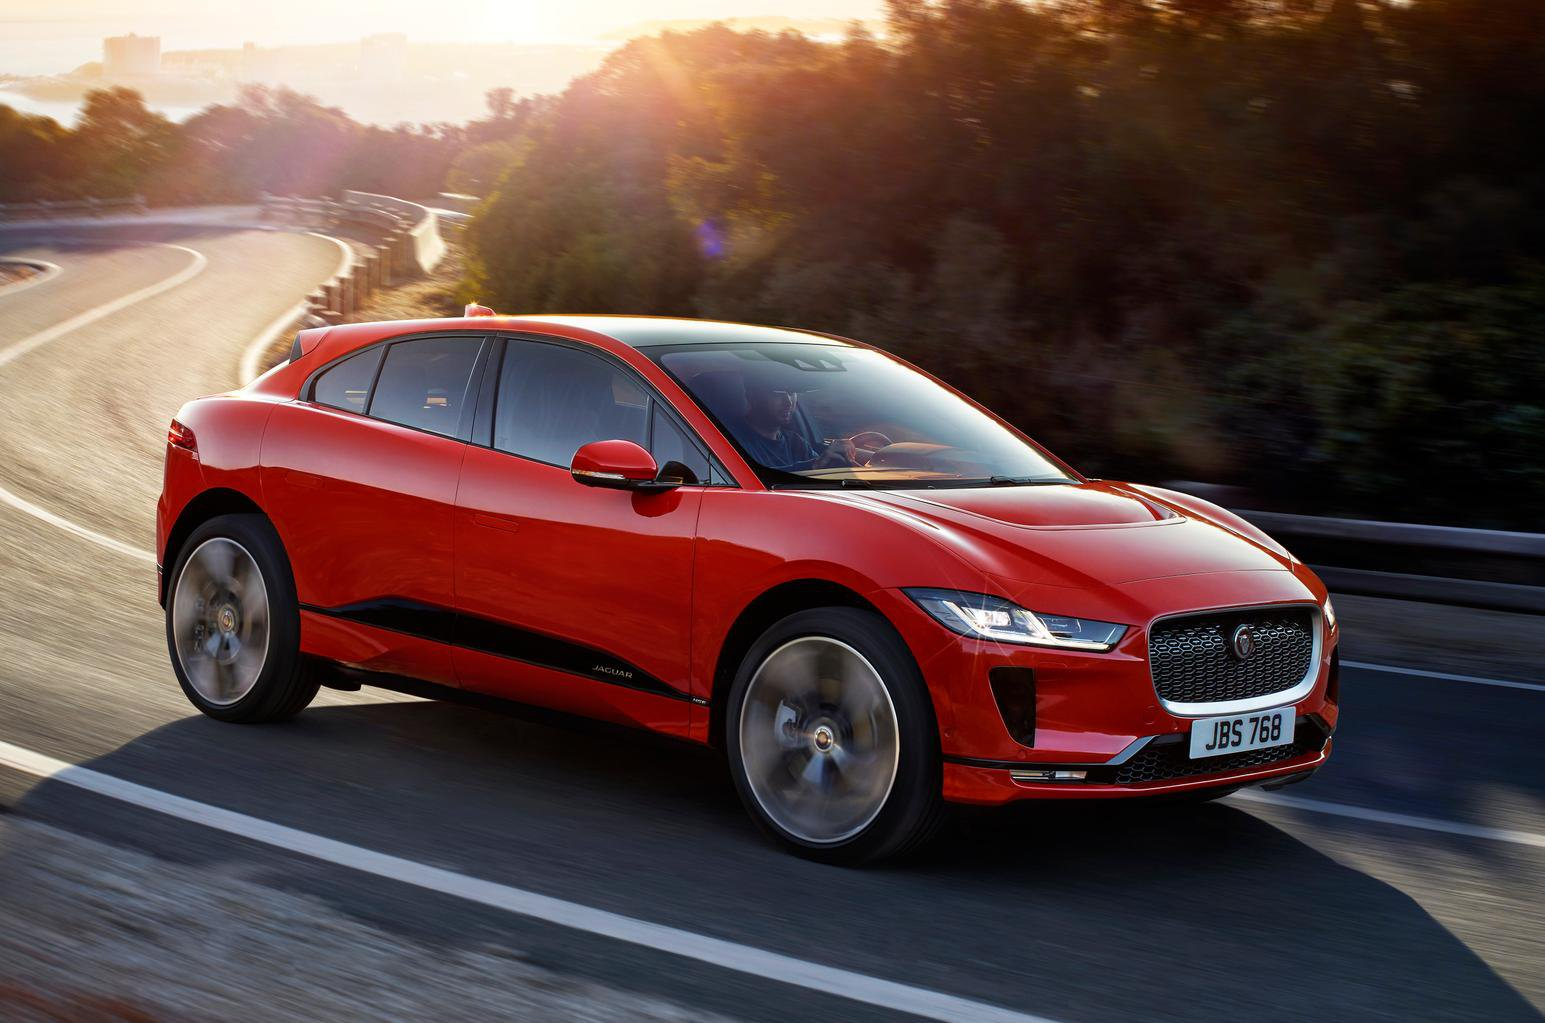 2018 Jaguar I-Pace revealed – prices, specs and release date